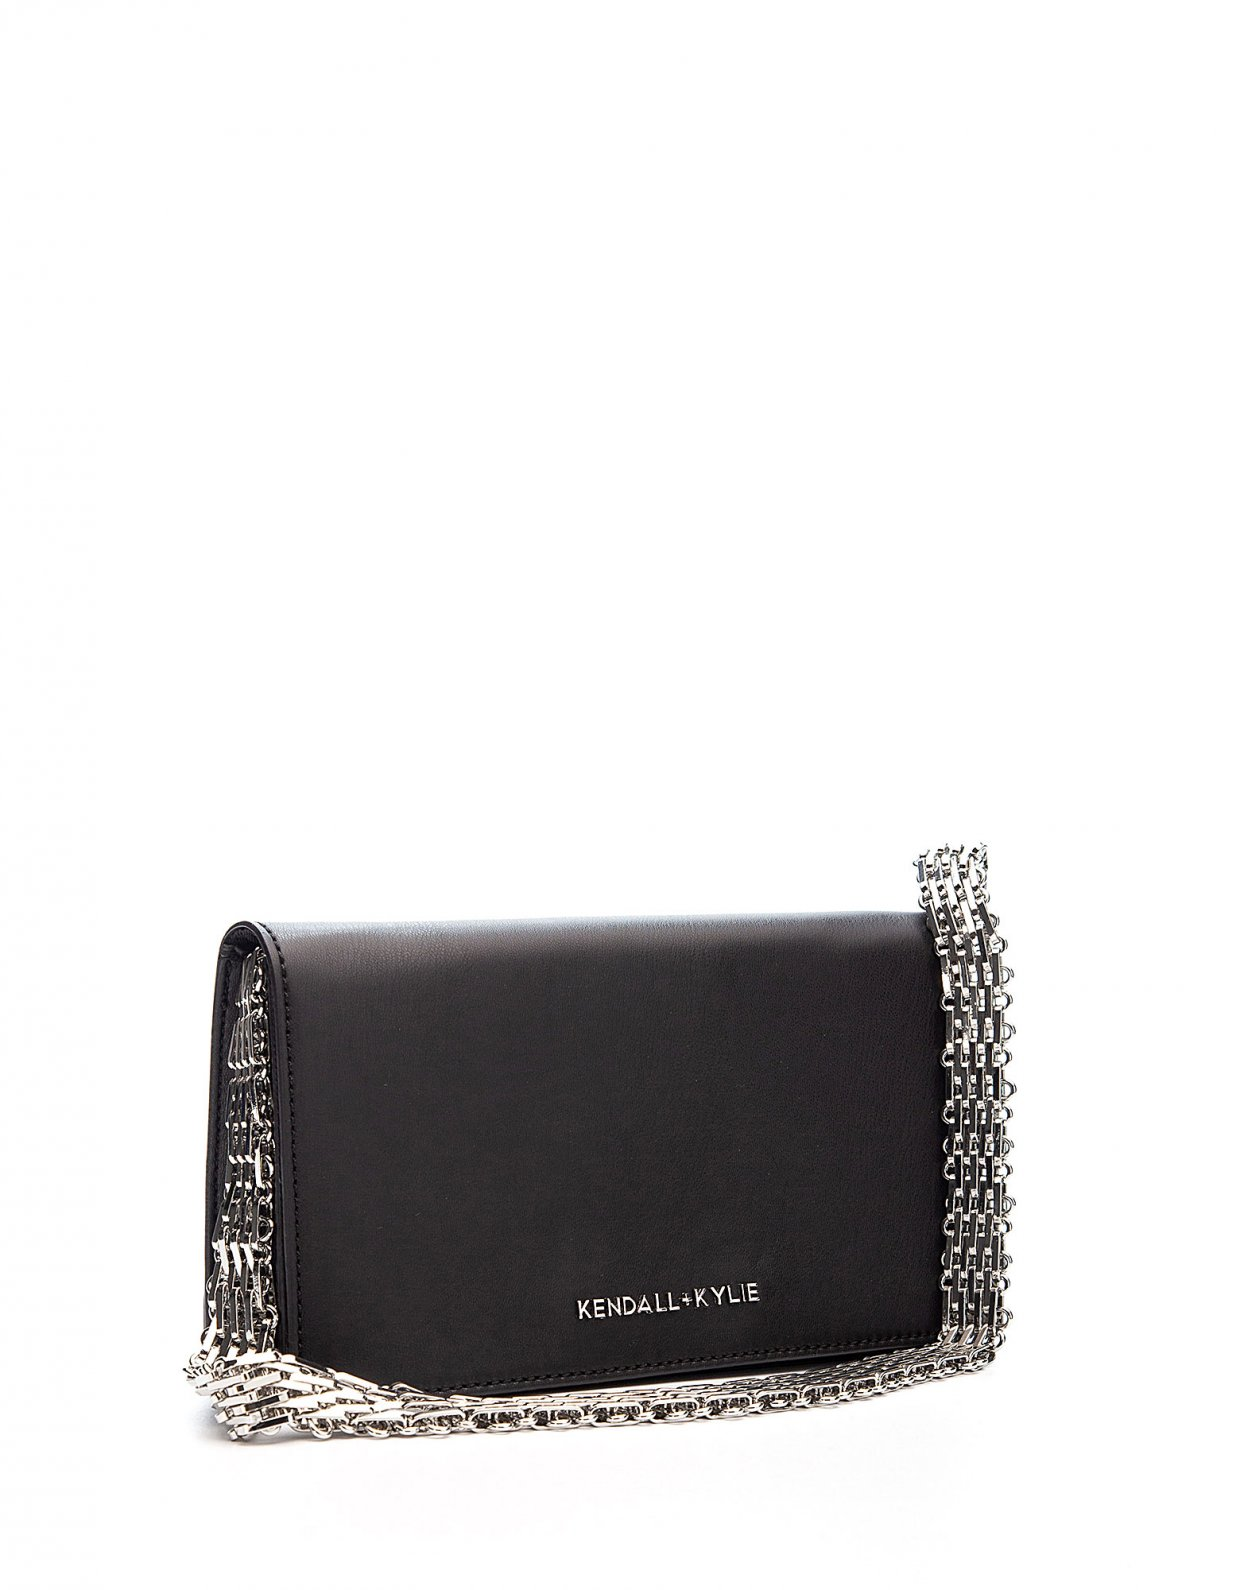 Kendall + Kylie Amanza shoulder bag black